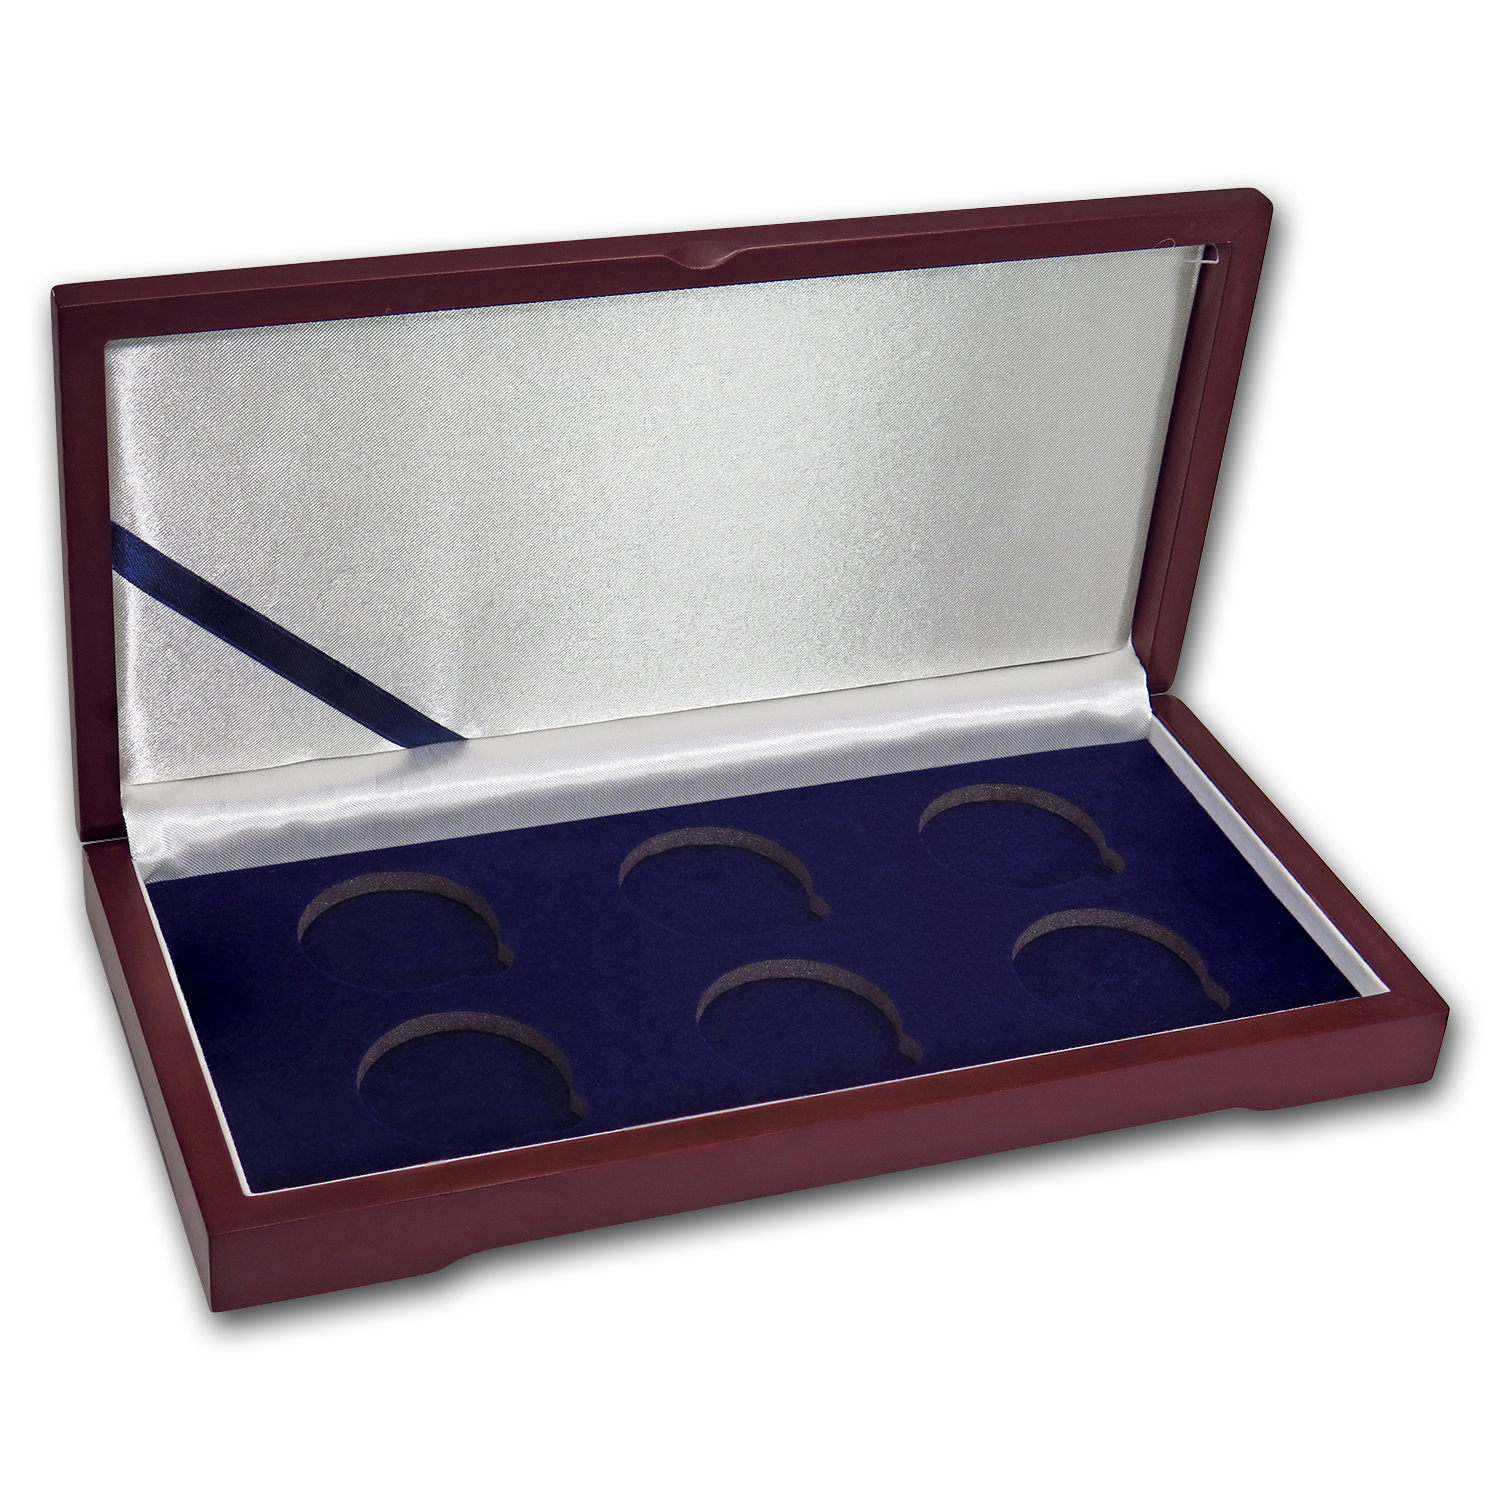 Hardwood 6-Coin Gift Box - Air-Tite Capsules (H-Style)